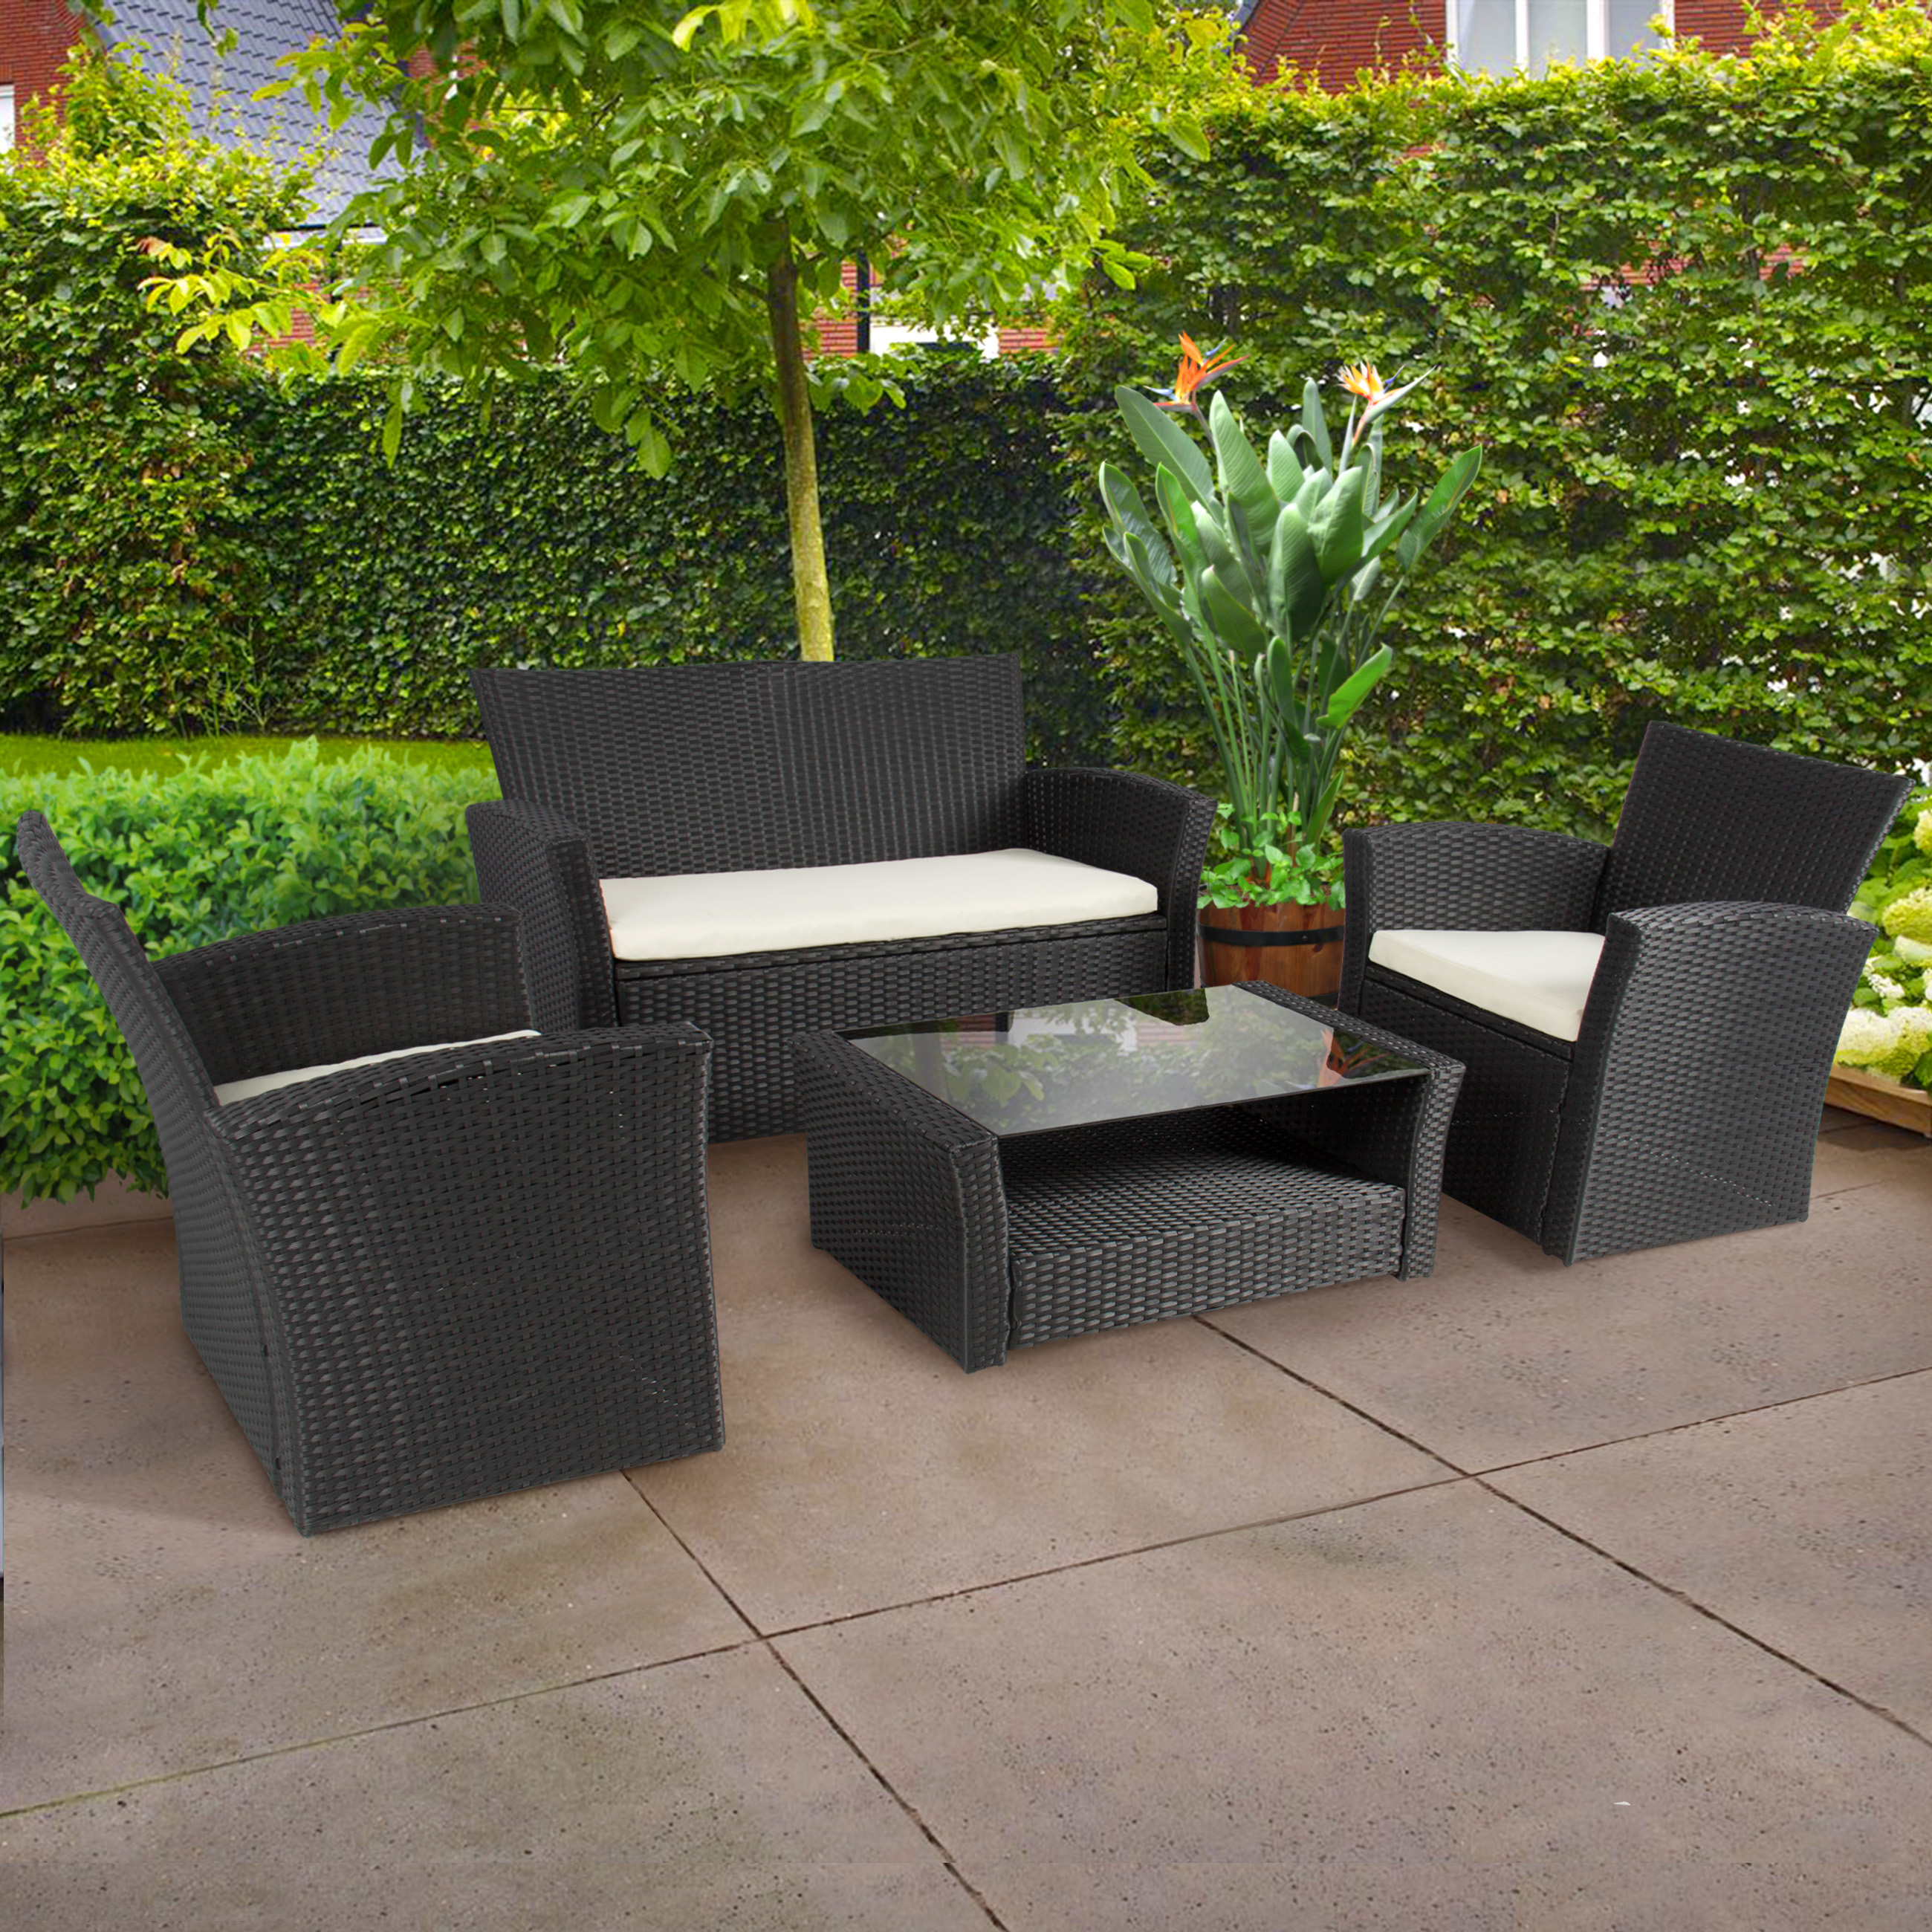 4pc Outdoor Patio Garden Furniture Wicker Rattan Sofa Set Black    Walmart.com